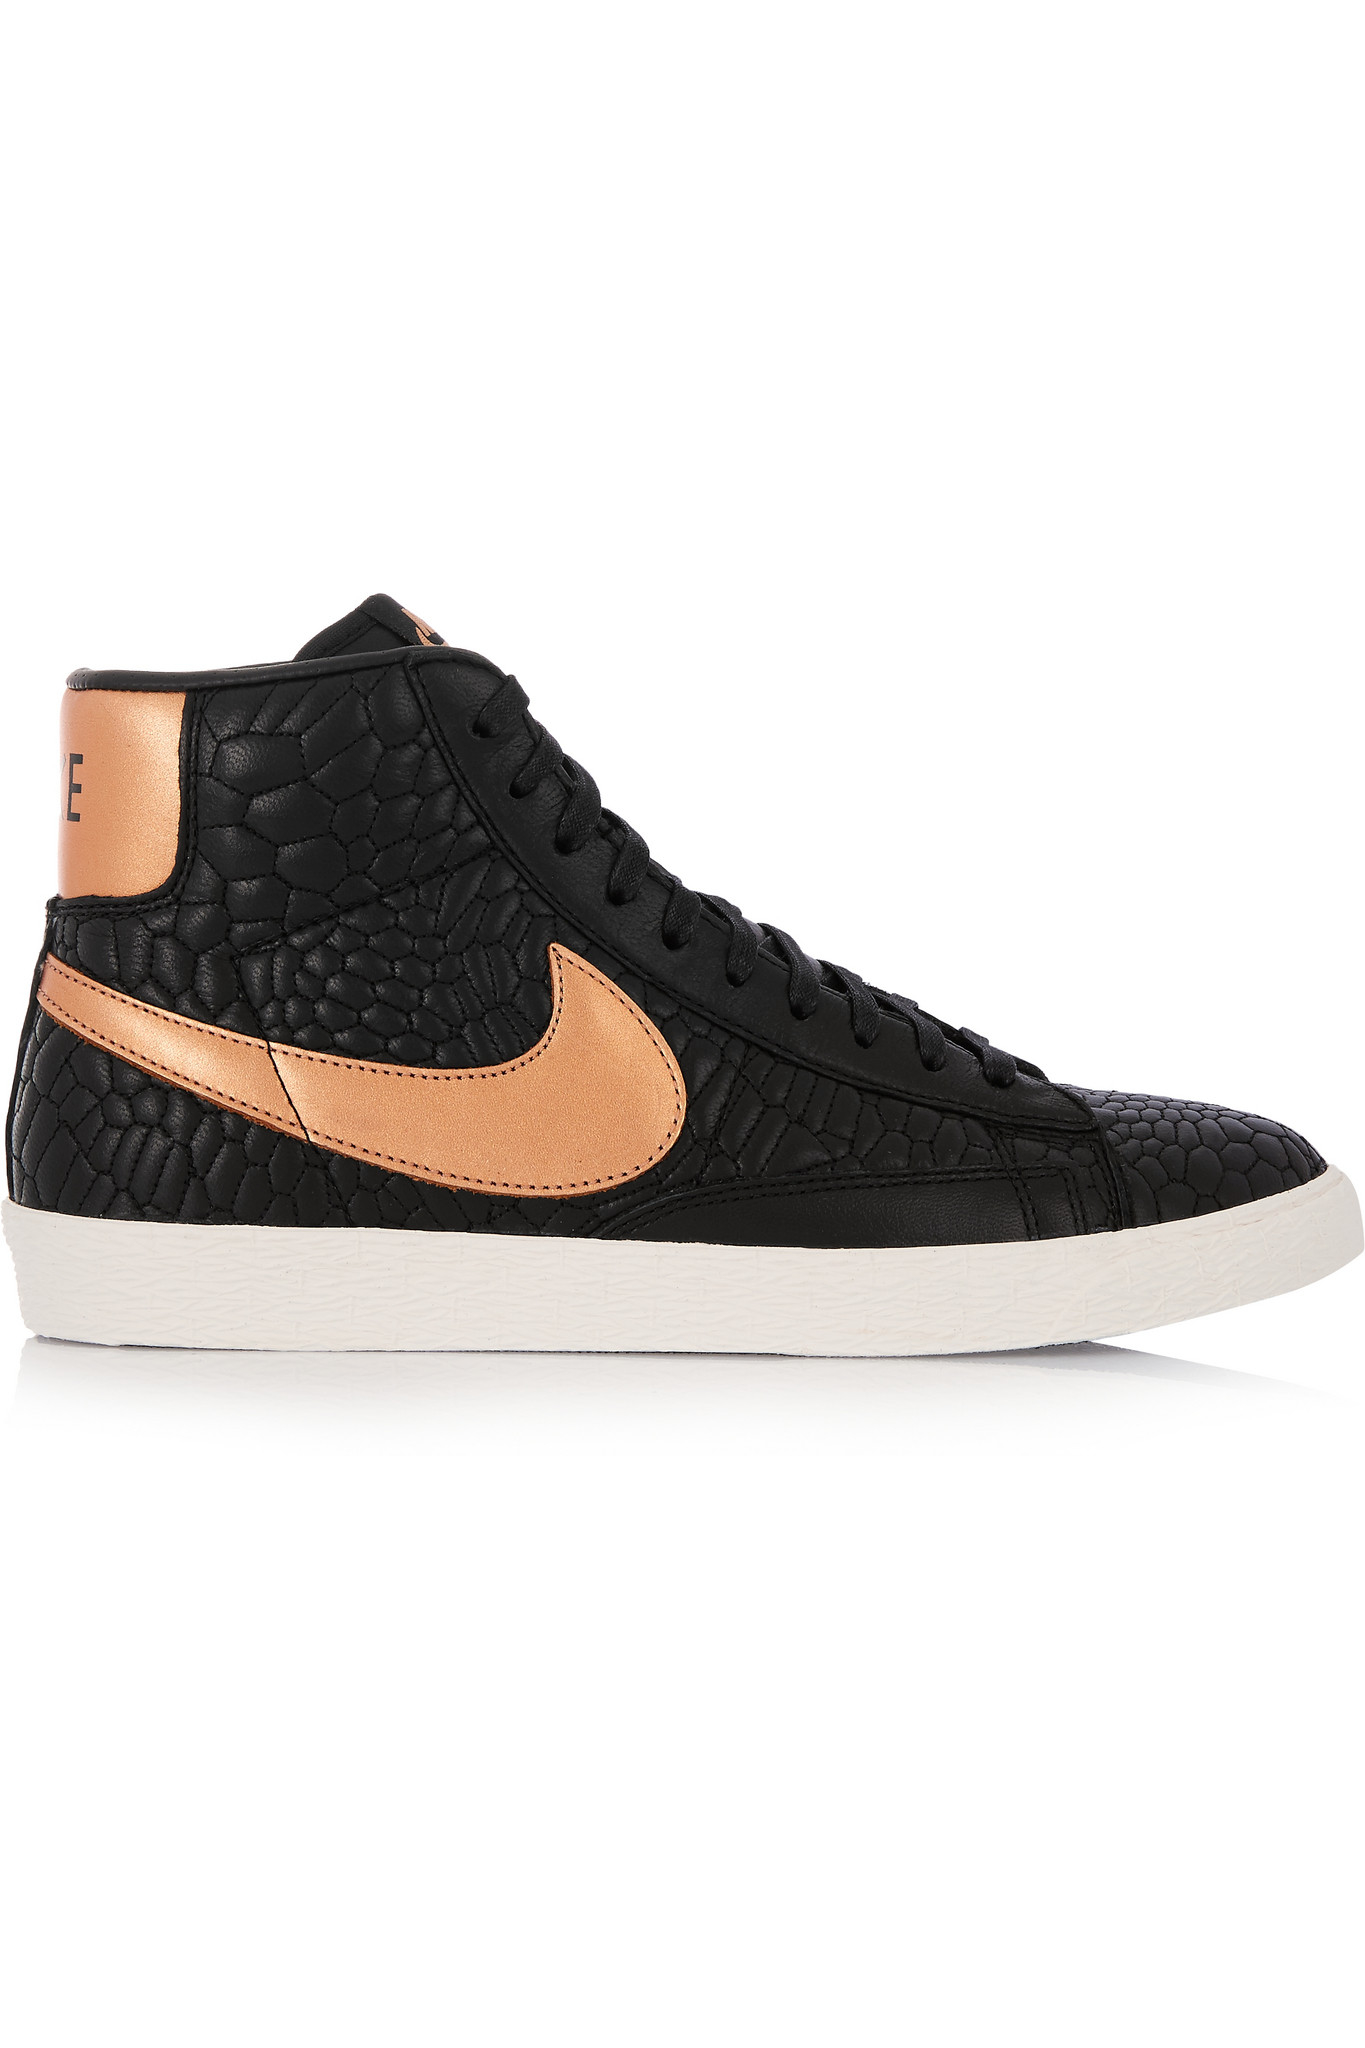 Nike - Blazer Croc-Effect Leather High-Top Sneakers -7541